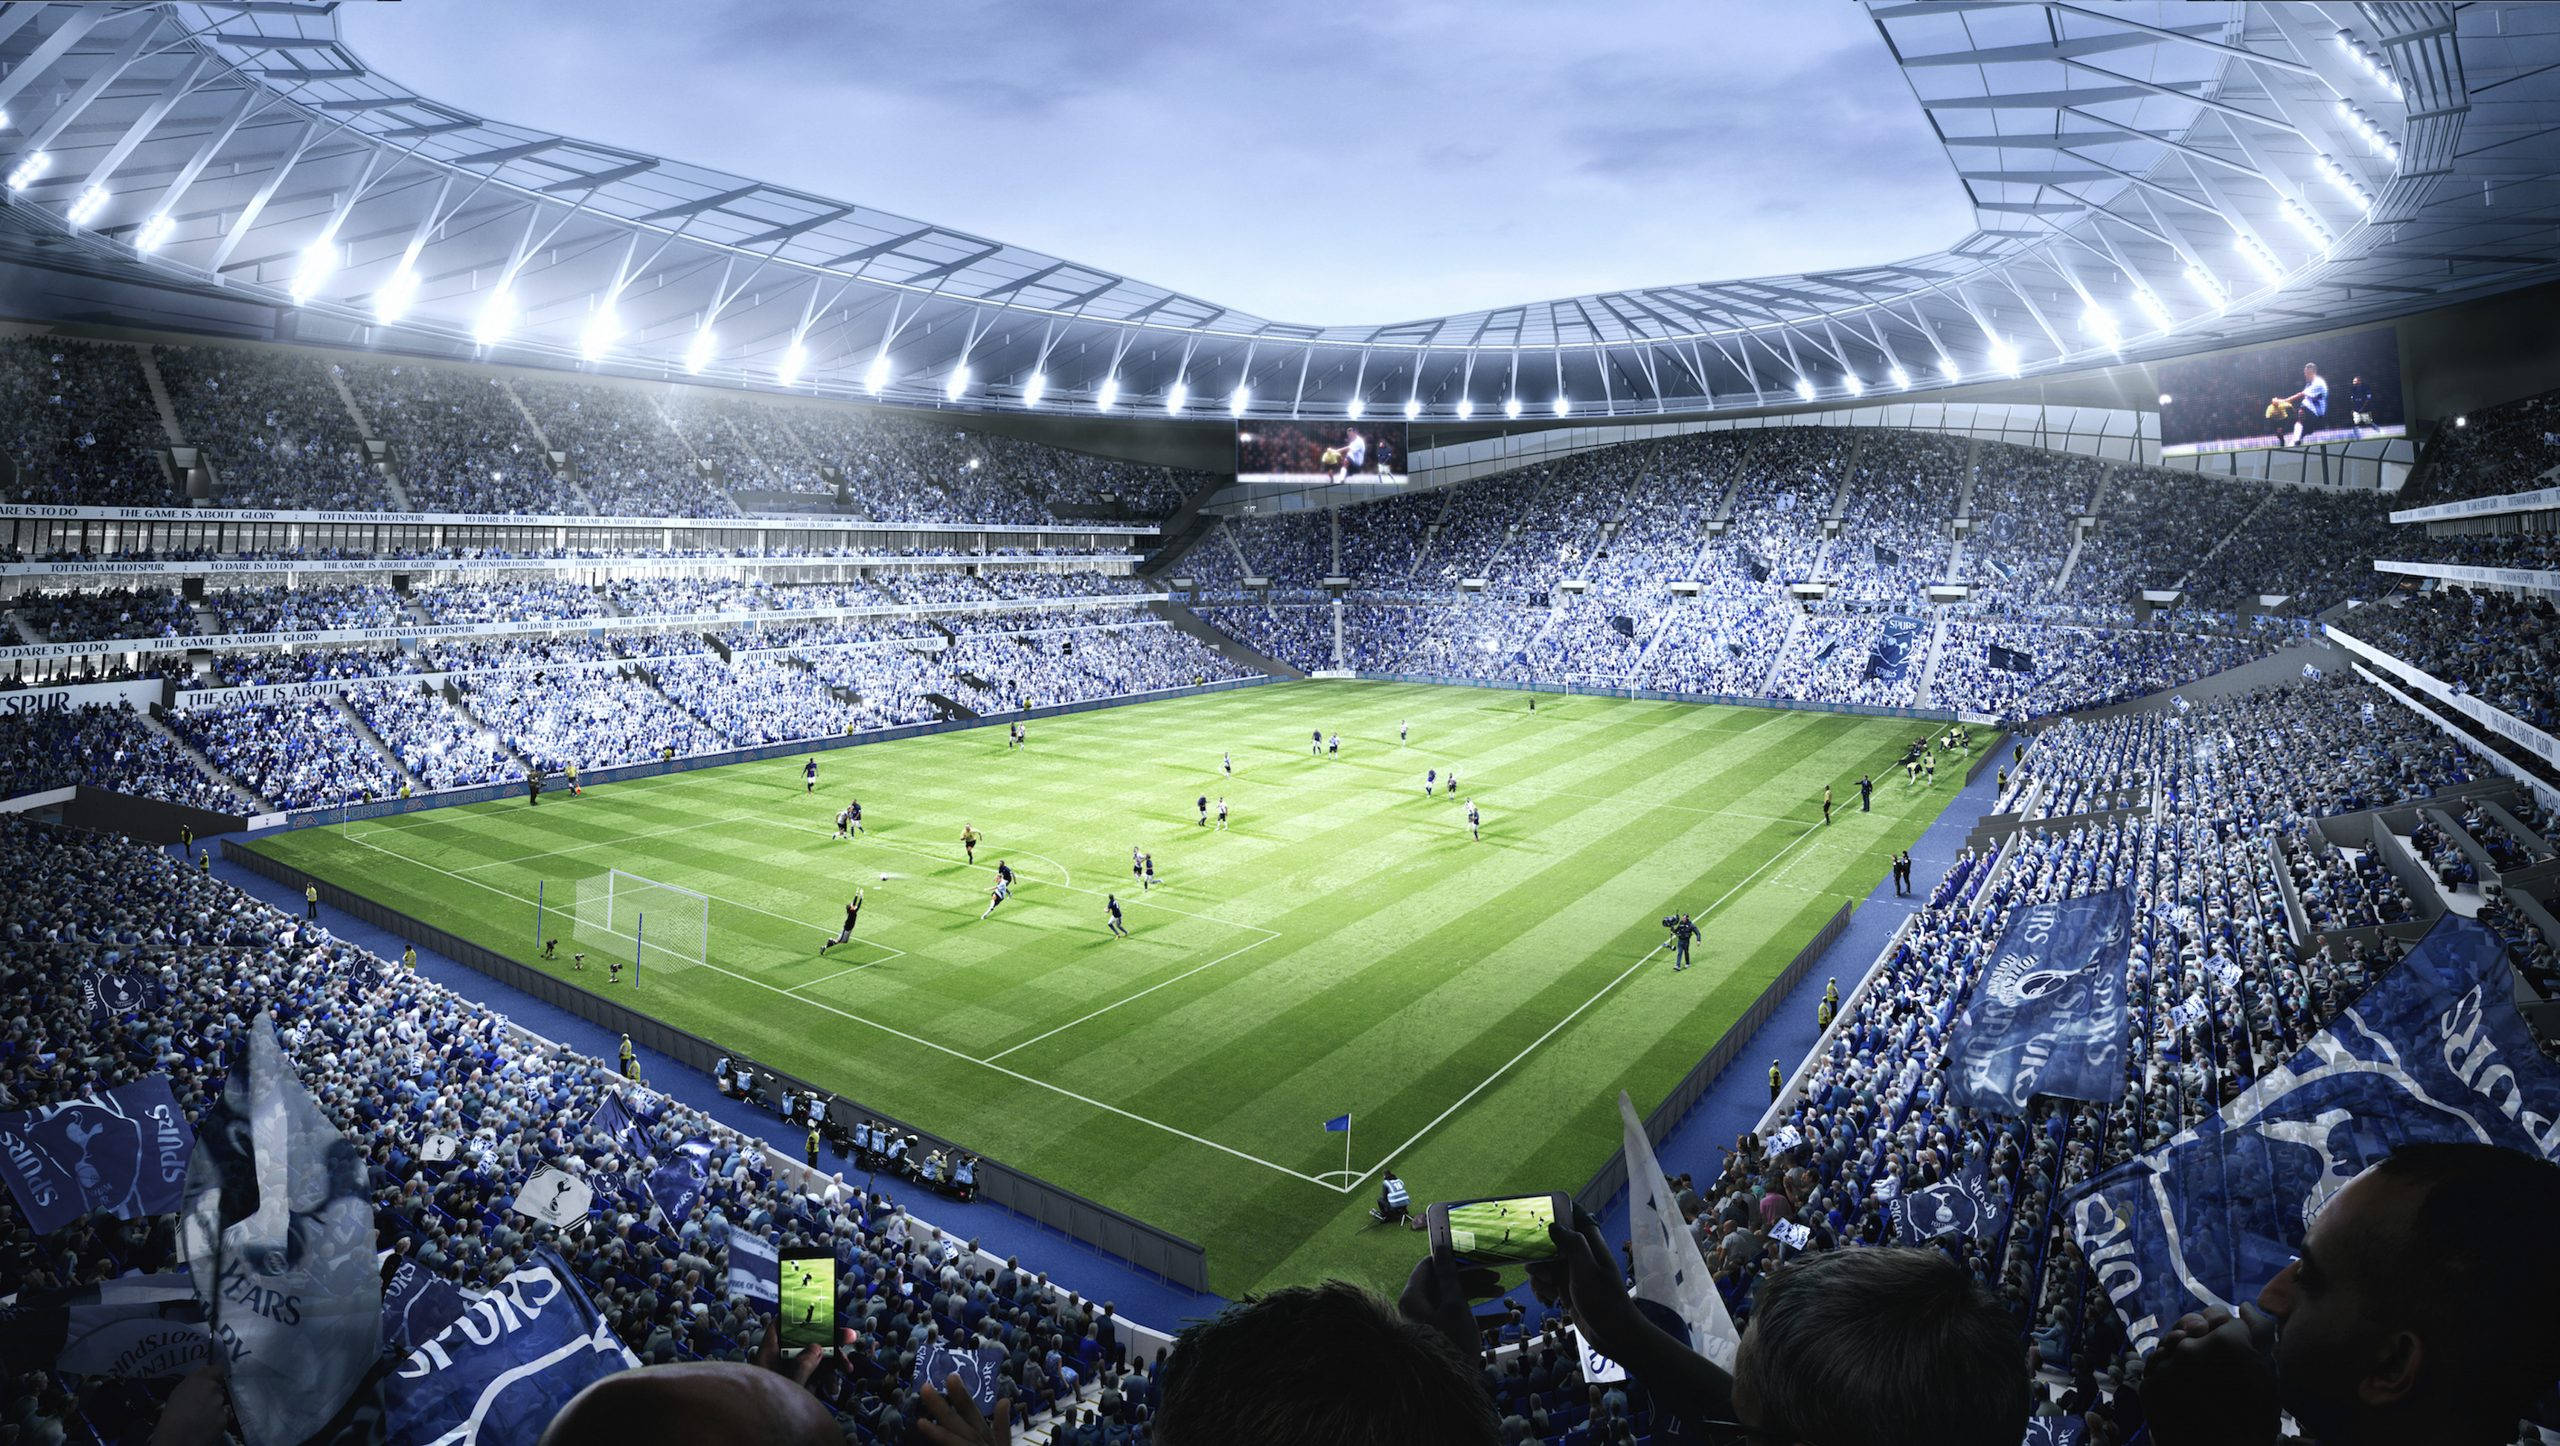 Tottenham Hotspur S New Stadium To Sport The World S First Dividing Retractable Pitch Sports Venue Business Svb